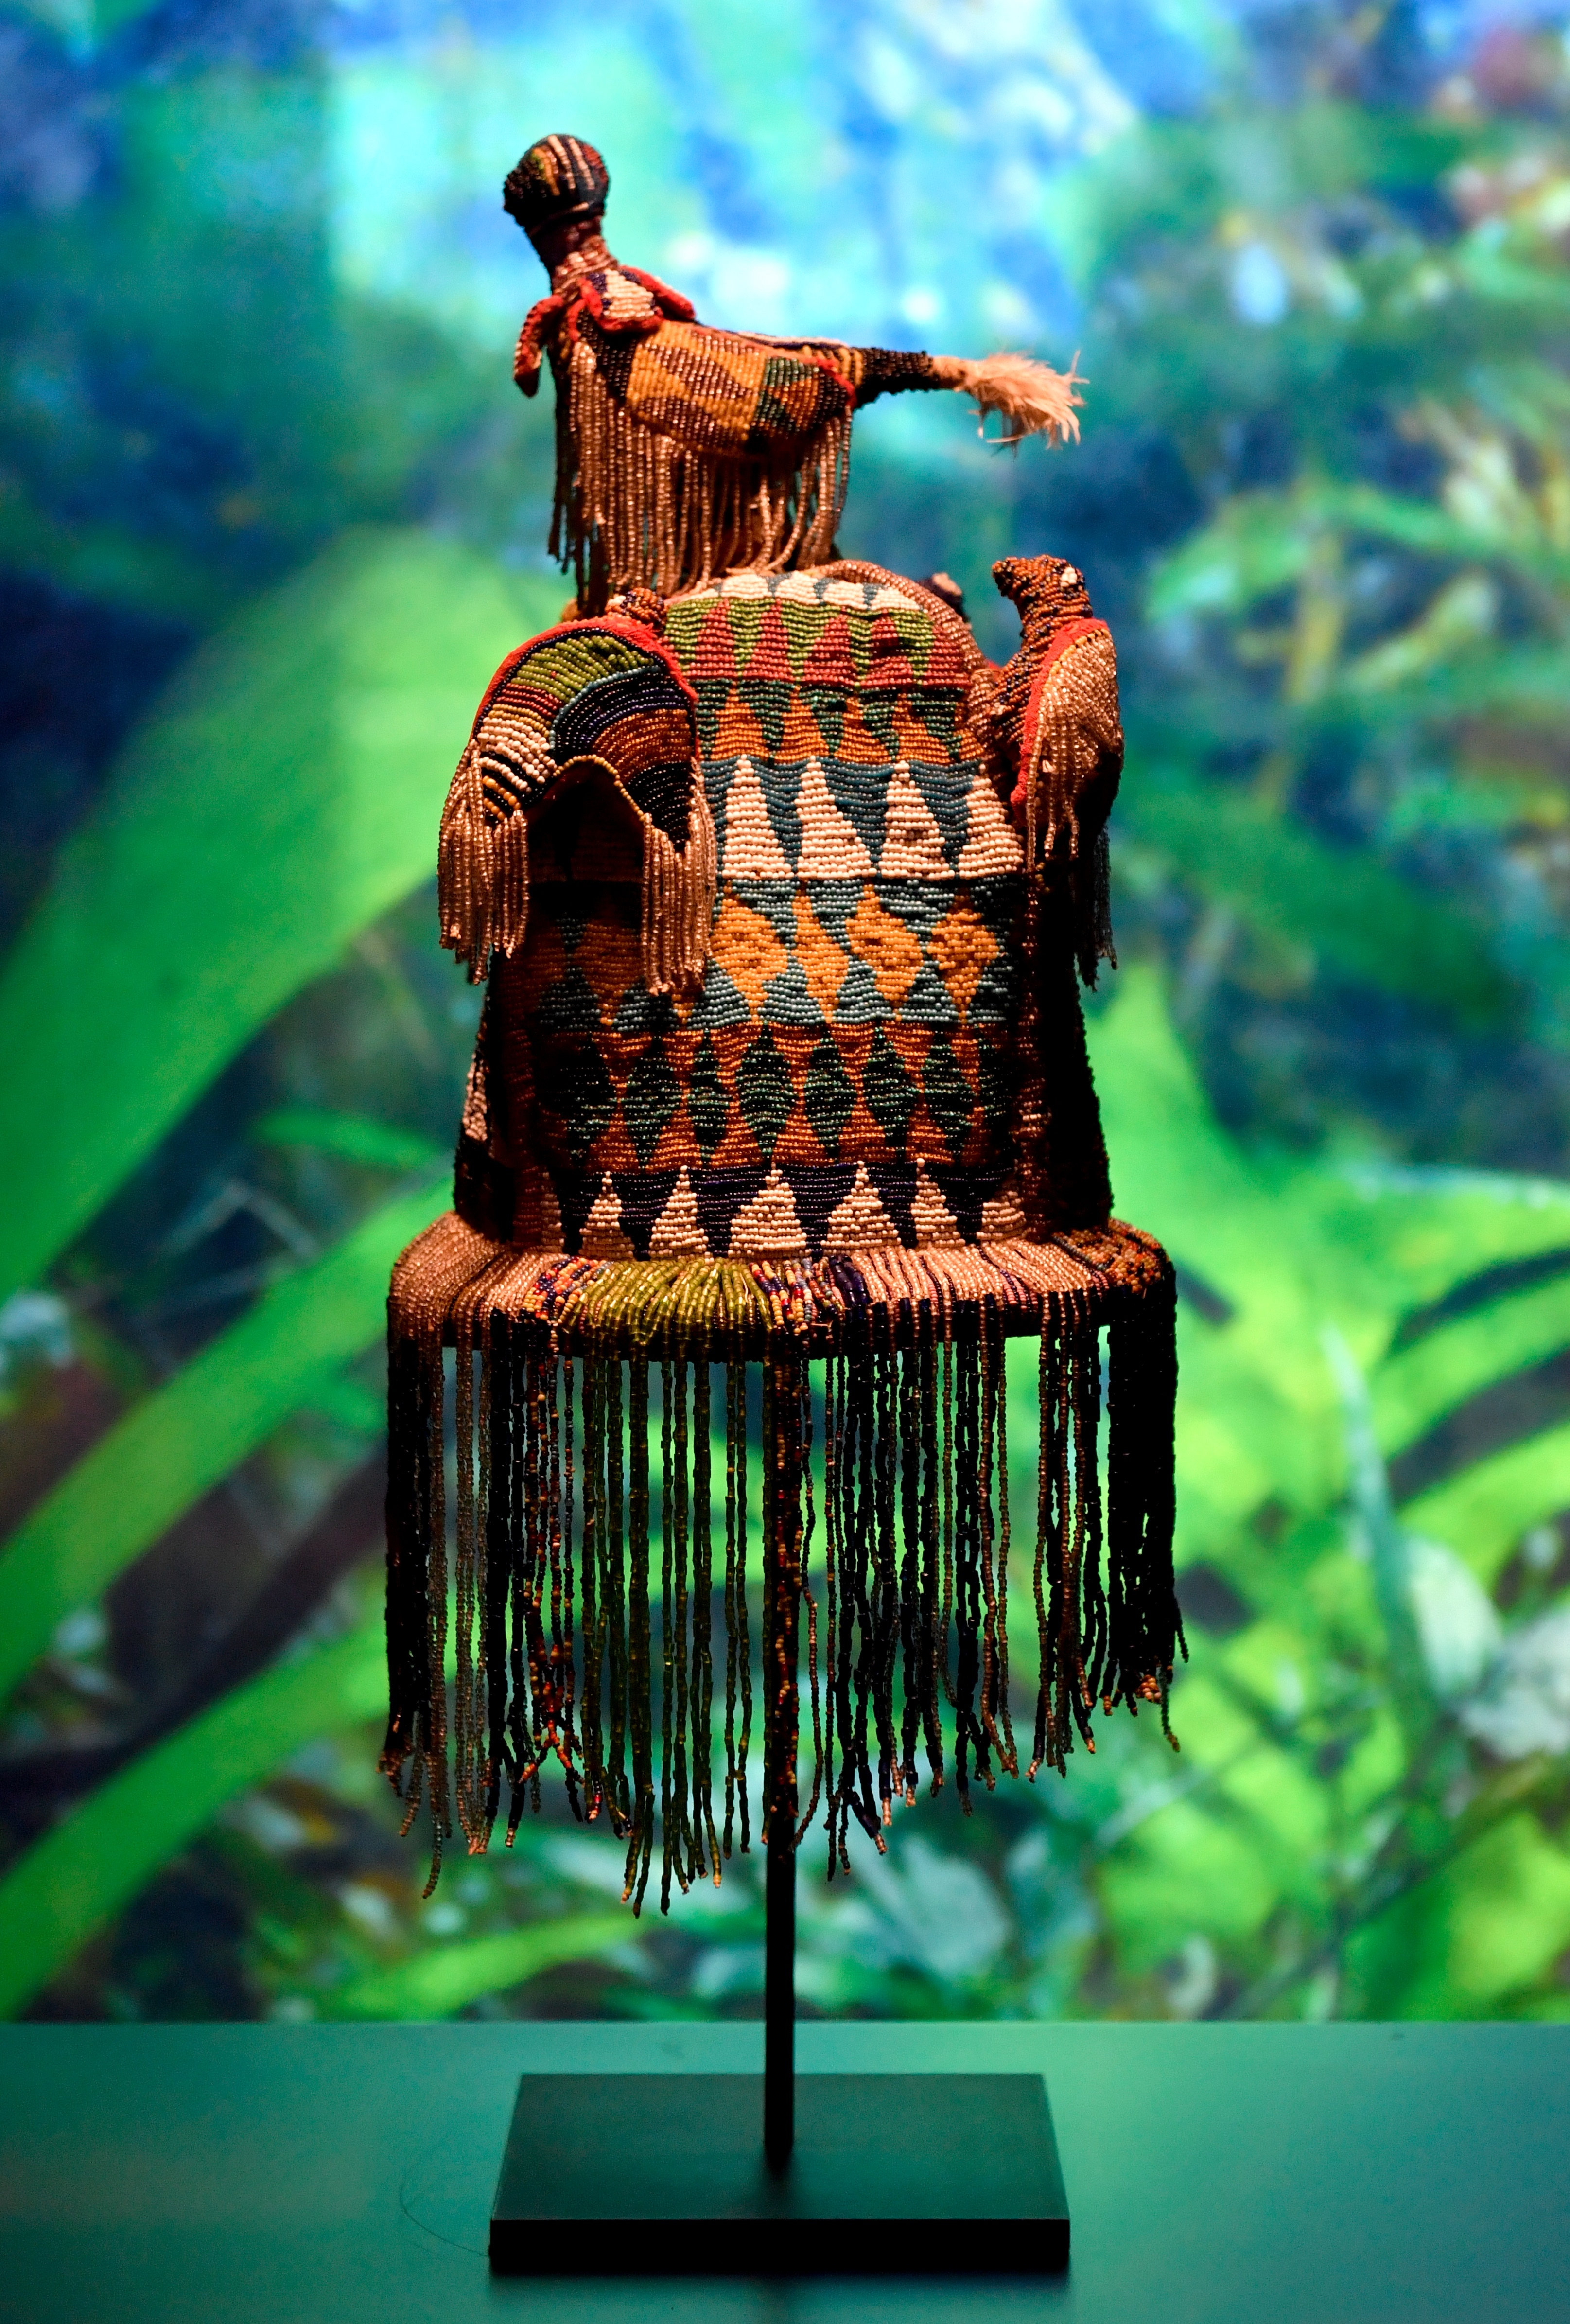 Funerary crown of the Kingdom of Dahomey dating from 1860-1889 is pictured, on May 18, 2018 at the Quai Branly Museum-Jacques Chirac in Paris.